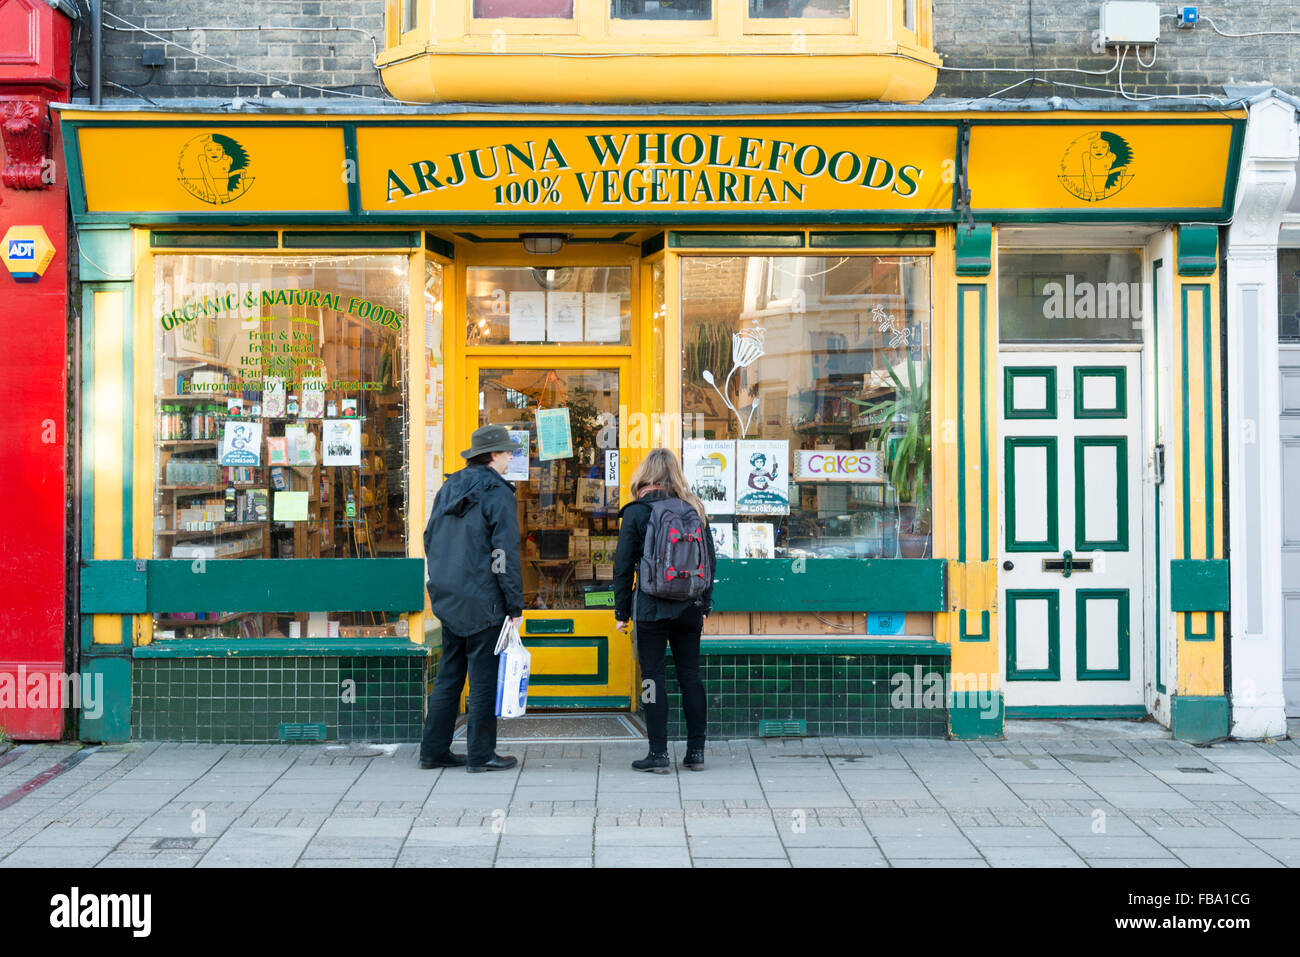 The Arjuna wholefood and vegetarian food independent shop in Mill Road Cambridge UK - Stock Image